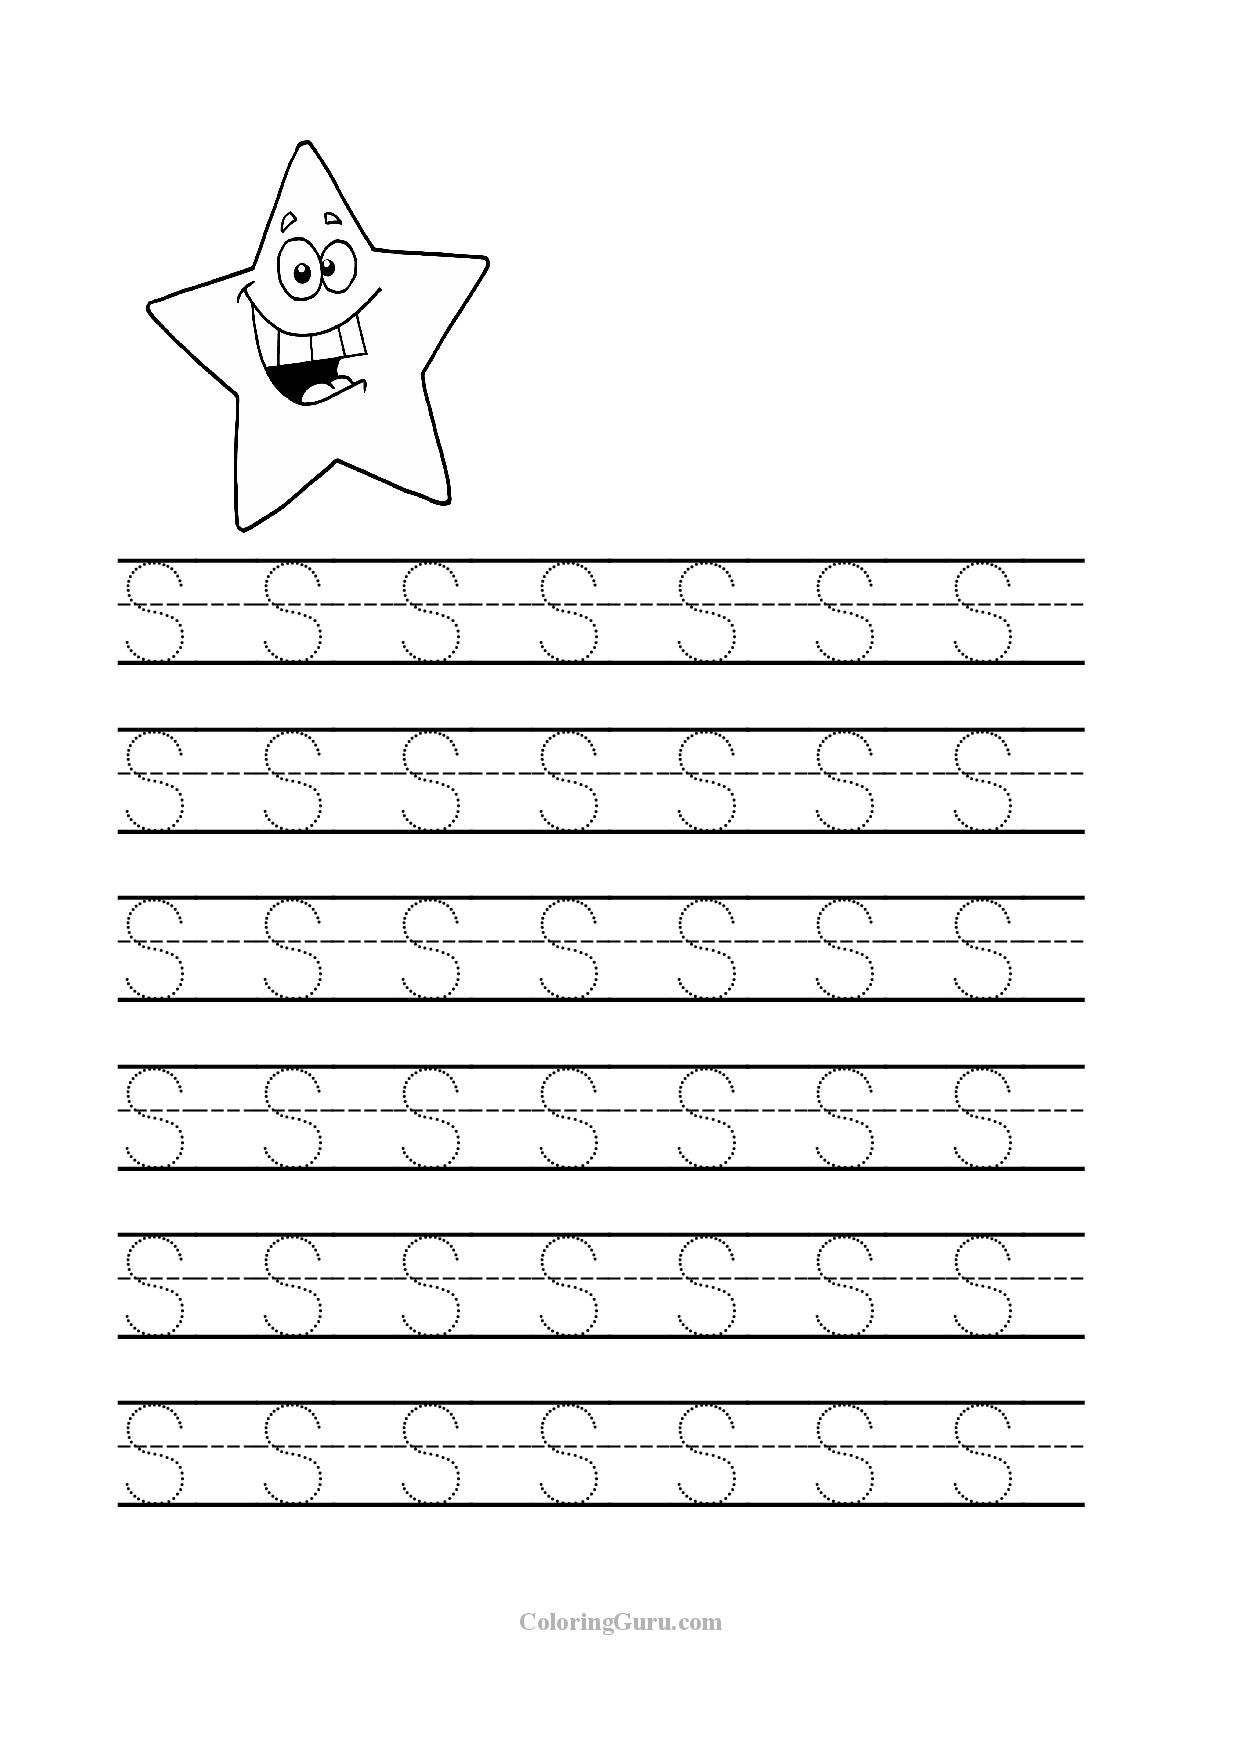 Free Printable Tracing Letter S Worksheets For Preschool intended for Tracing Letters Kindergarten Sheets